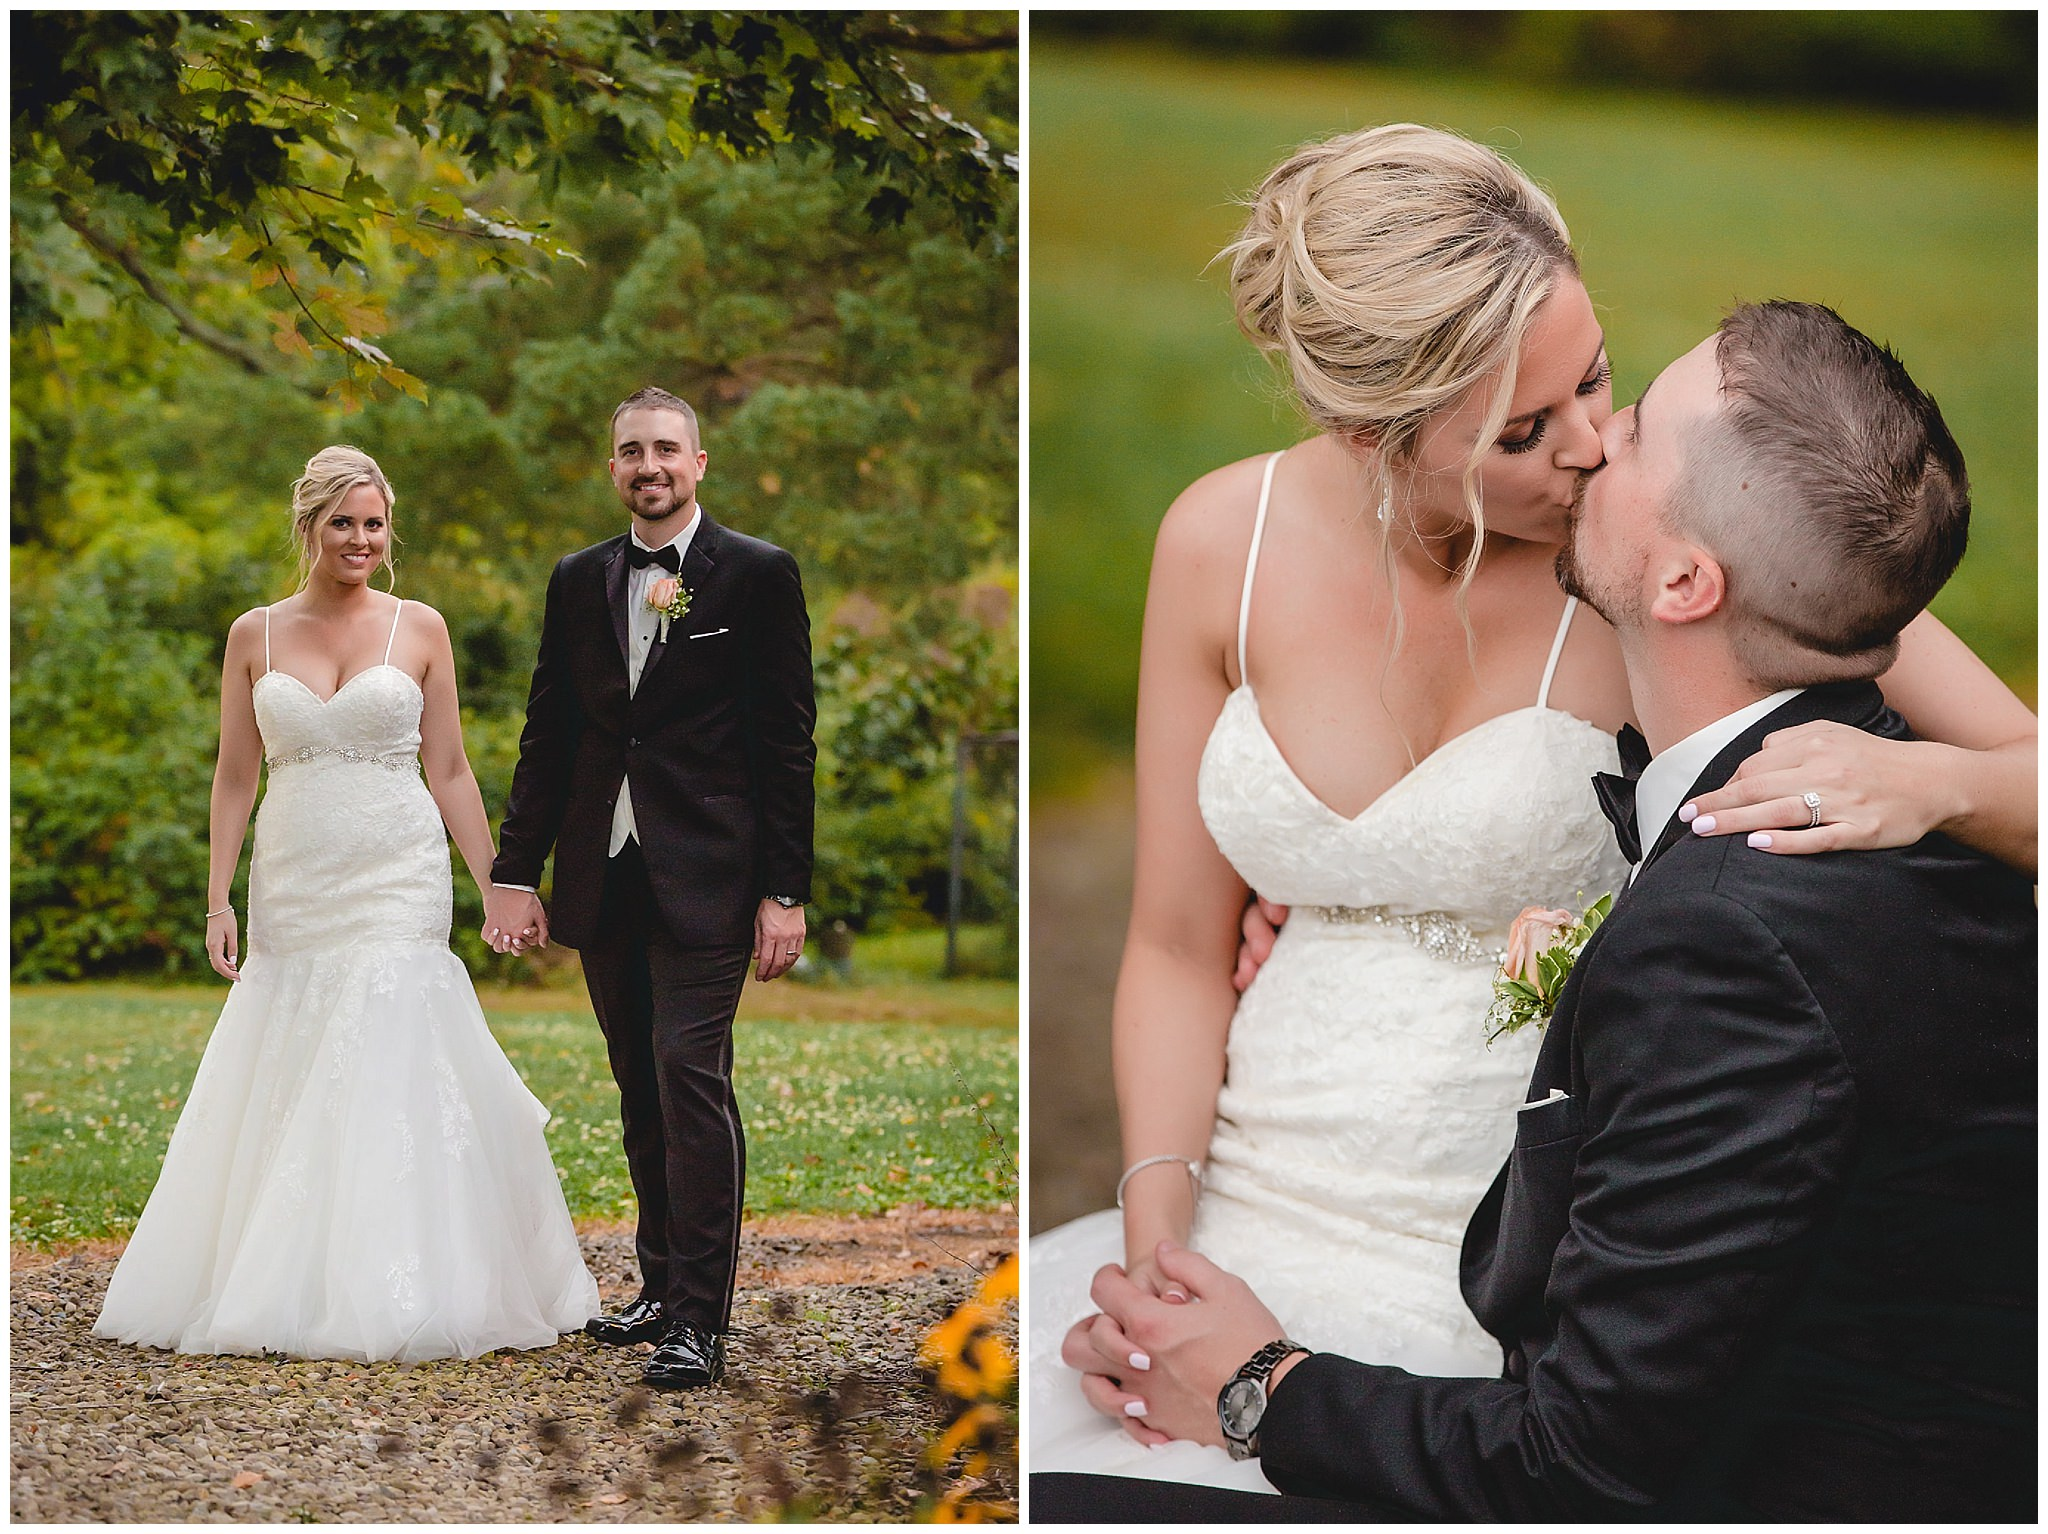 Newlyweds at the Gathering Place at Darlington Lake for their September wedding